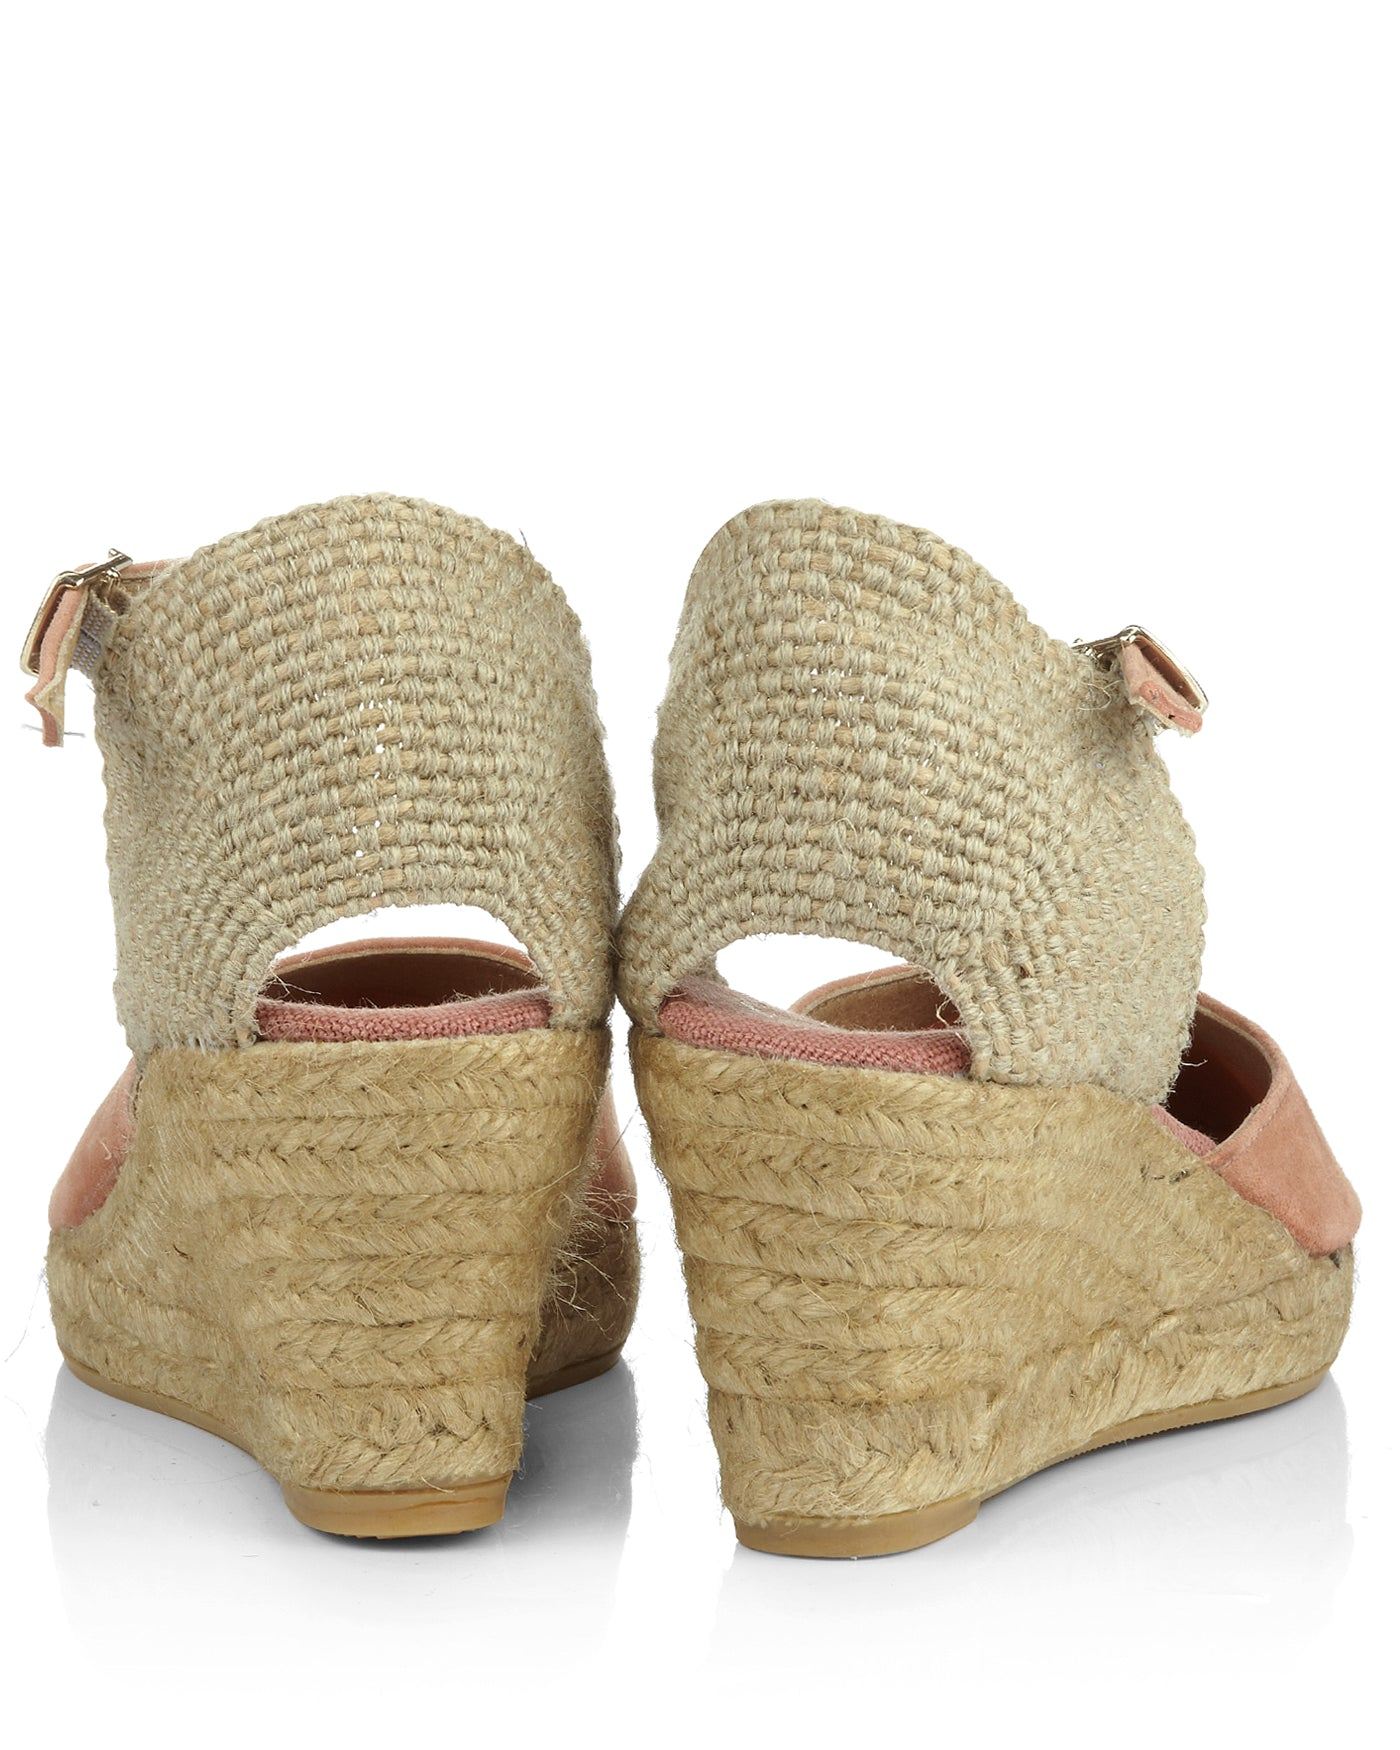 Lloret Papaya Pink Suede Espadrille Wedges - The Espadrille Hut